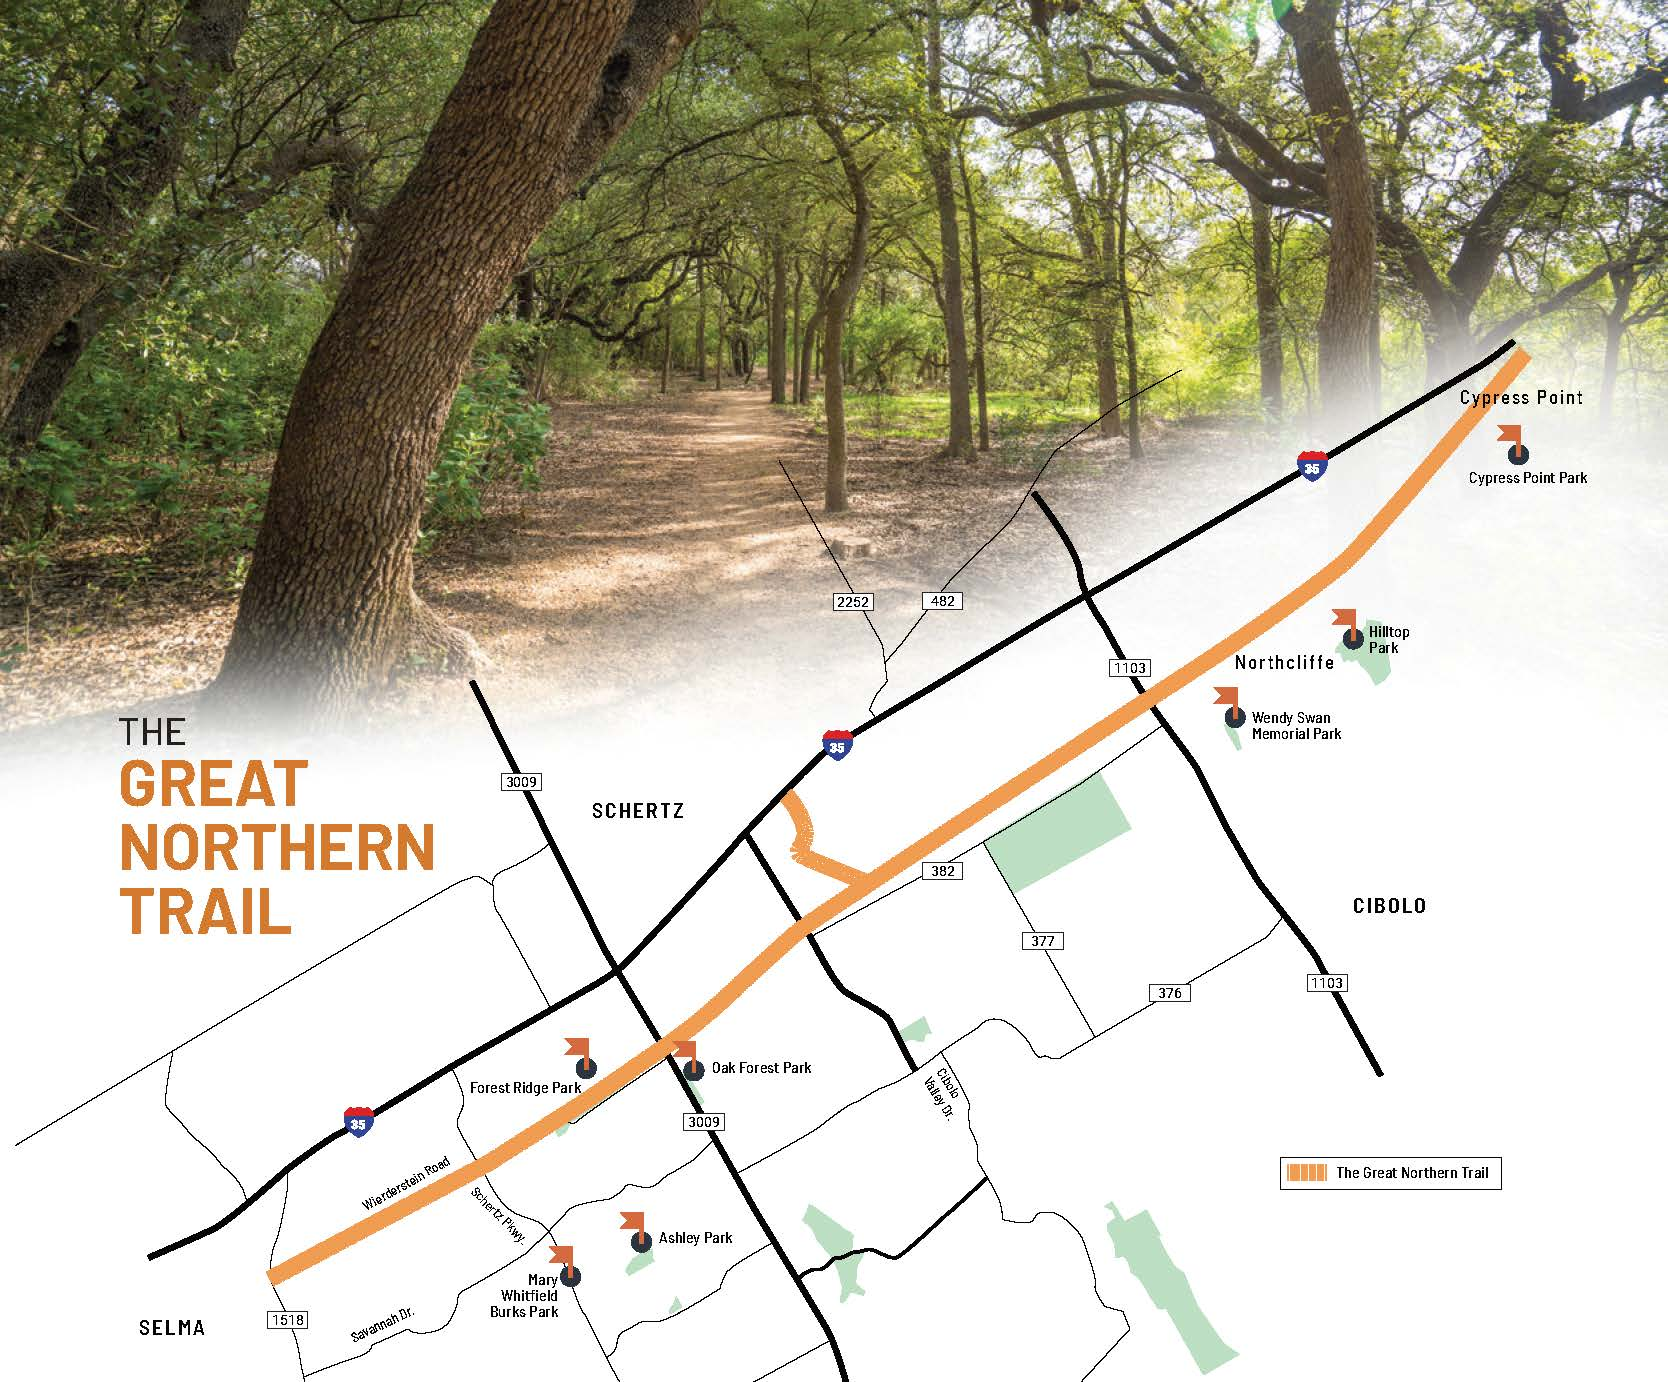 Trail Map with Image (1)